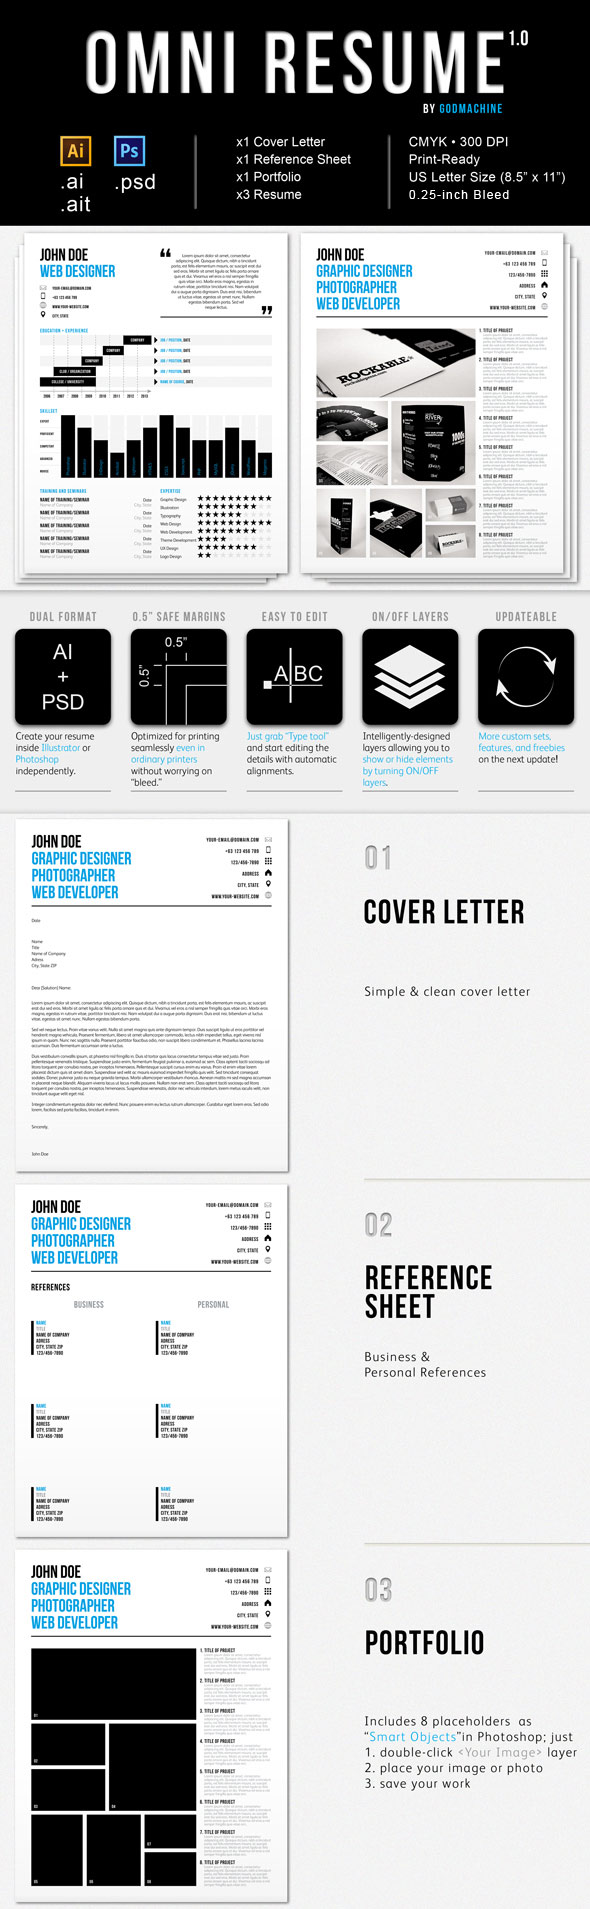 creative resume templates to land a new job in style omni infographic resume folio